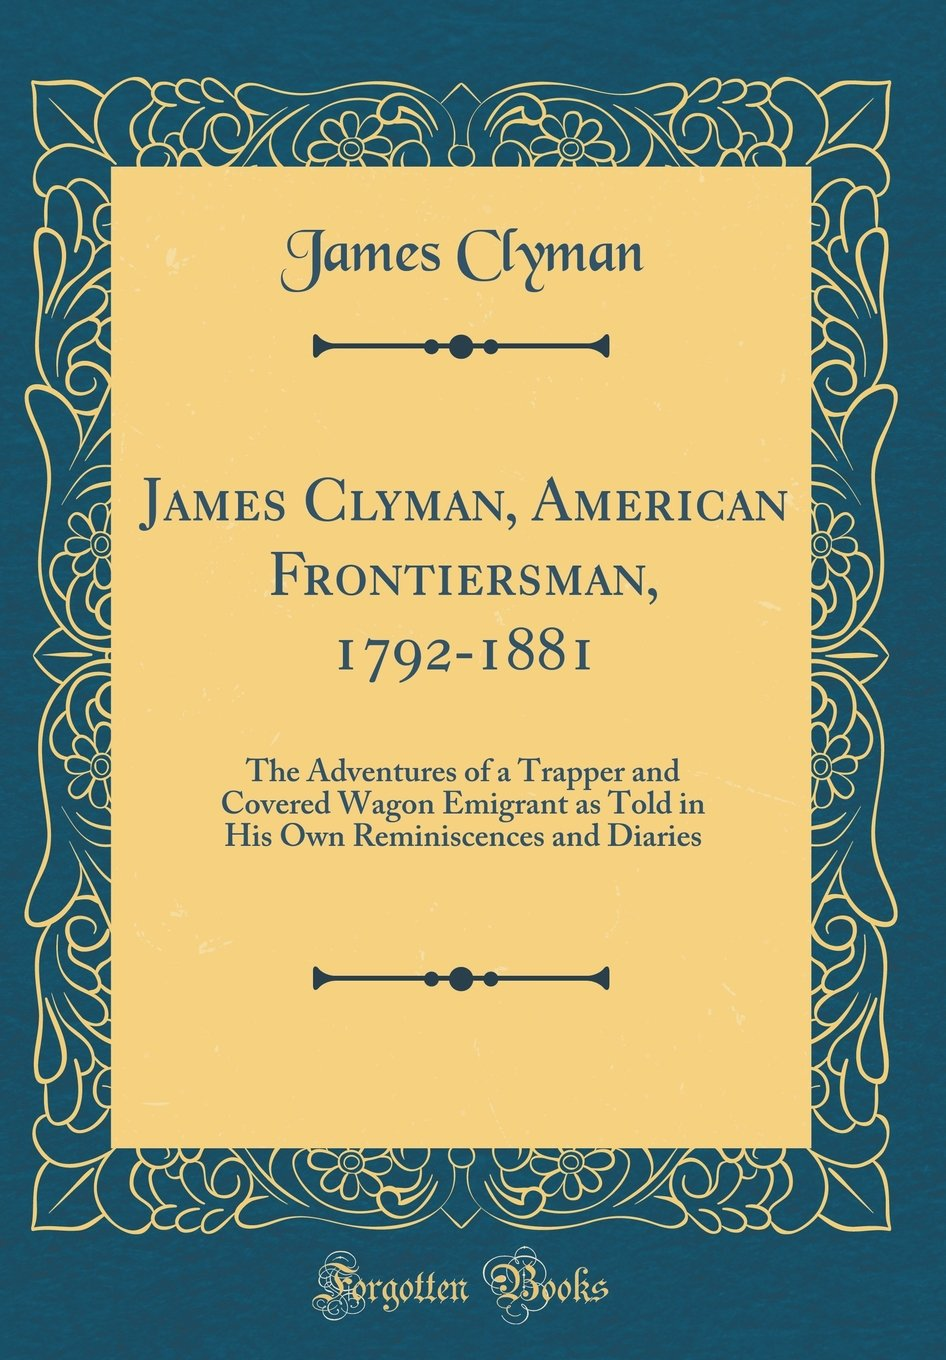 James Clyman, American Frontiersman, 1792-1881: The Adventures of a Trapper and Covered Wagon Emigrant as Told in His Own Reminiscences and Diaries (Classic Reprint) ebook